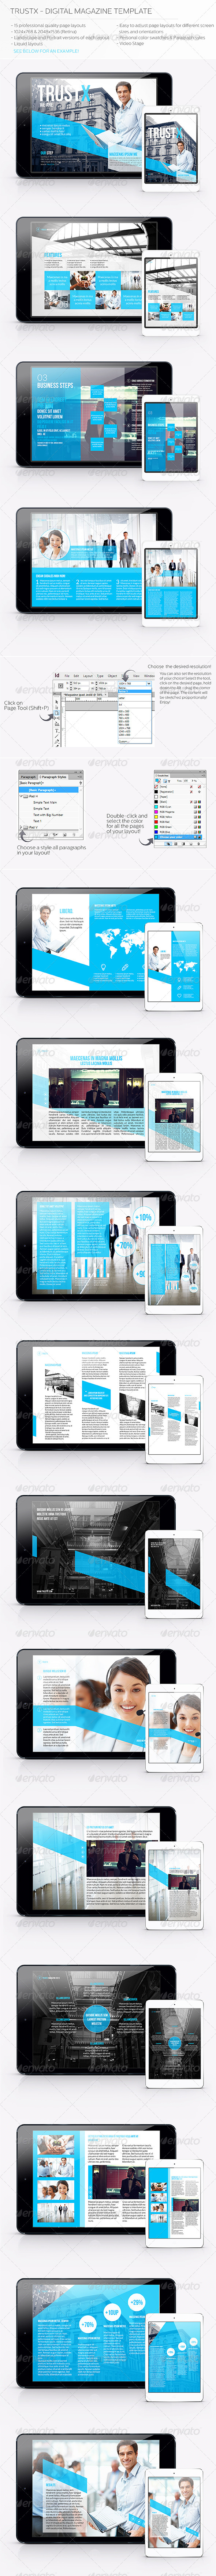 GraphicRiver Trustx Digital Magazine Template 5473781